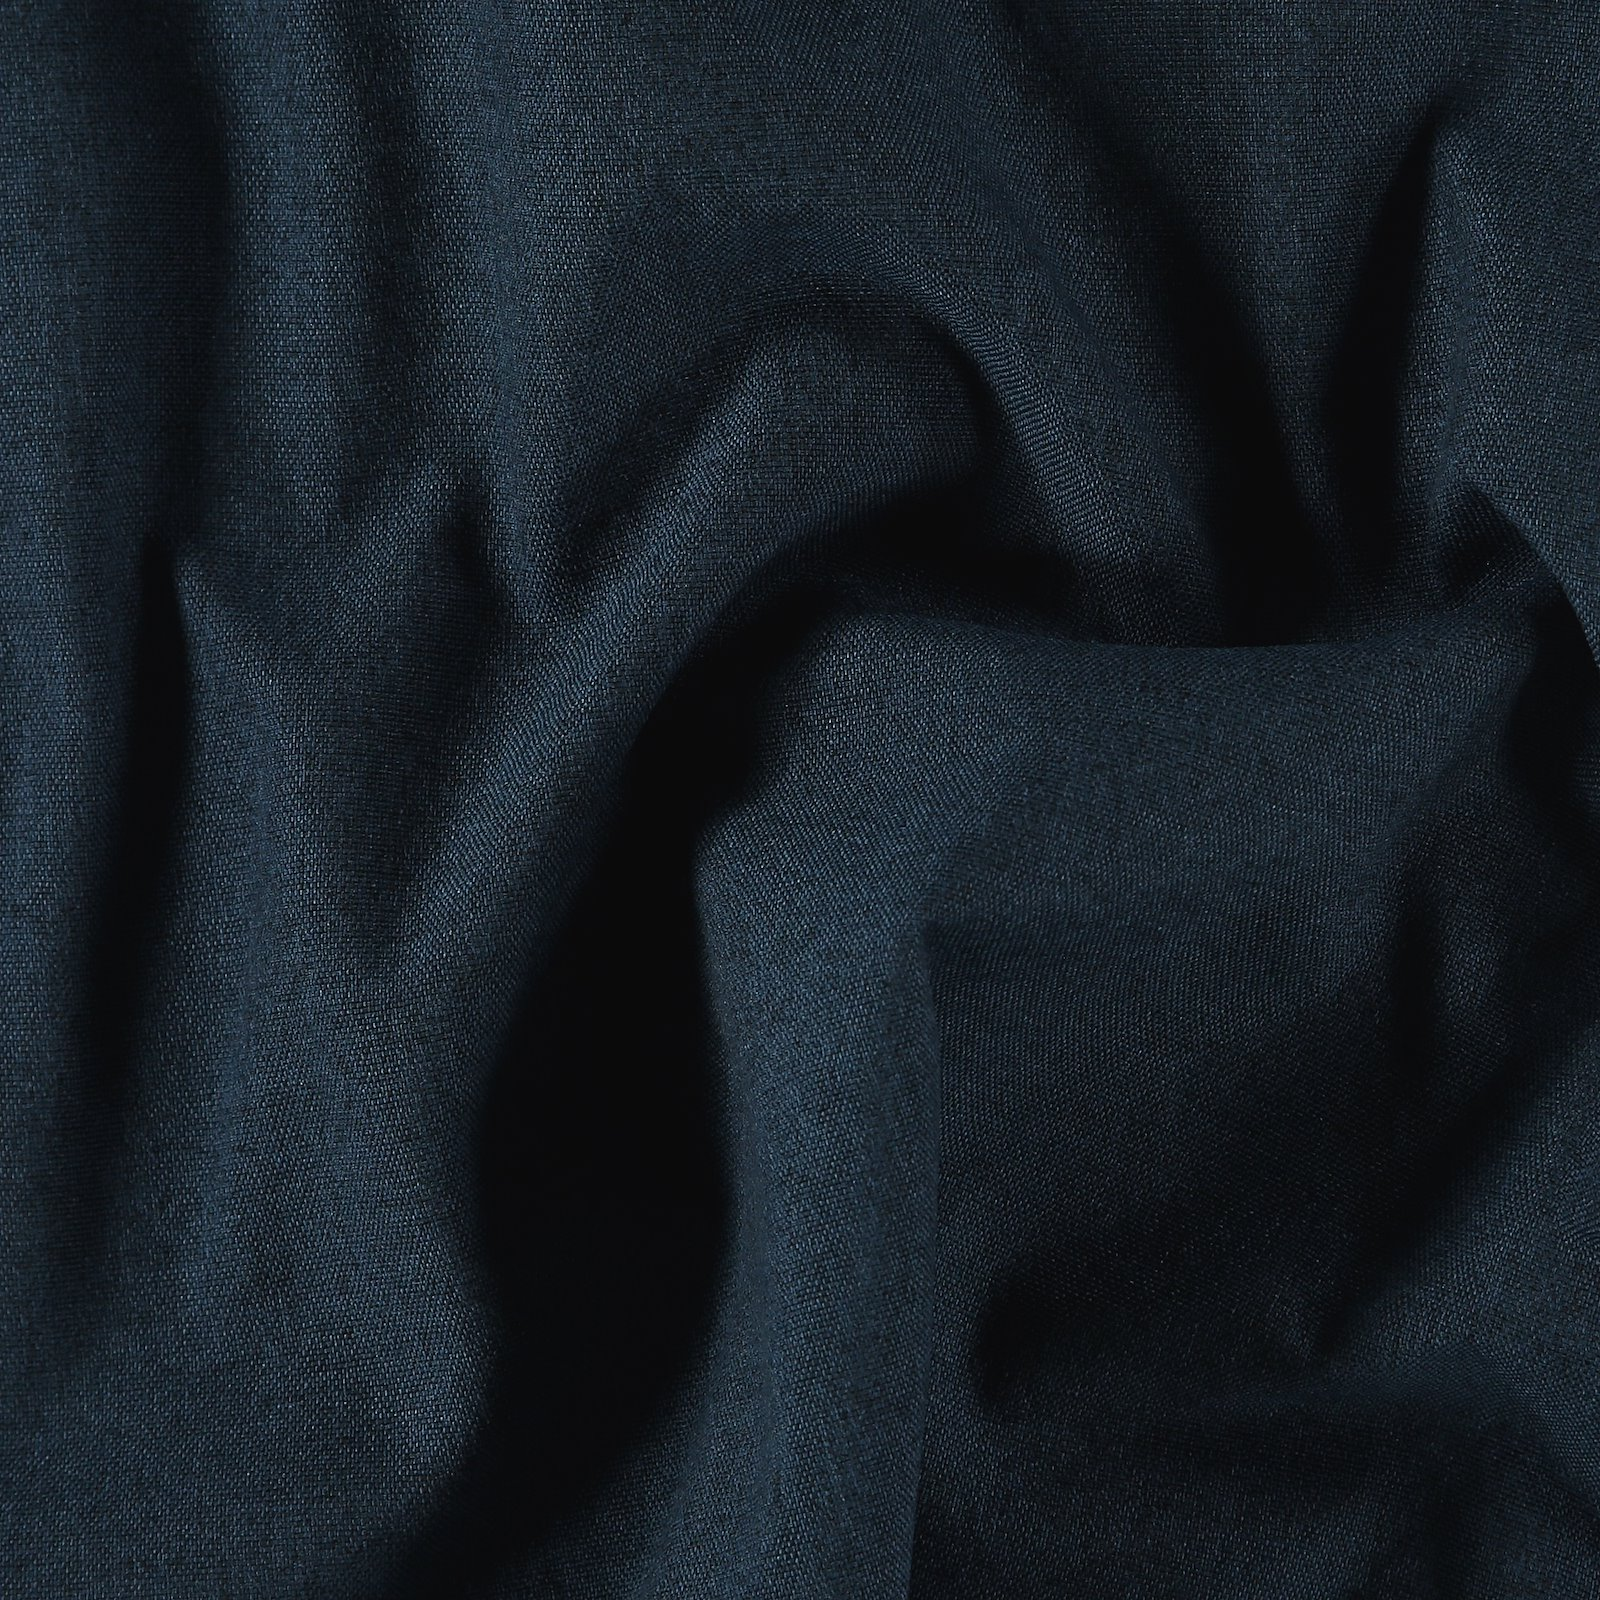 Upholstery fabric cobalt blue w/backing